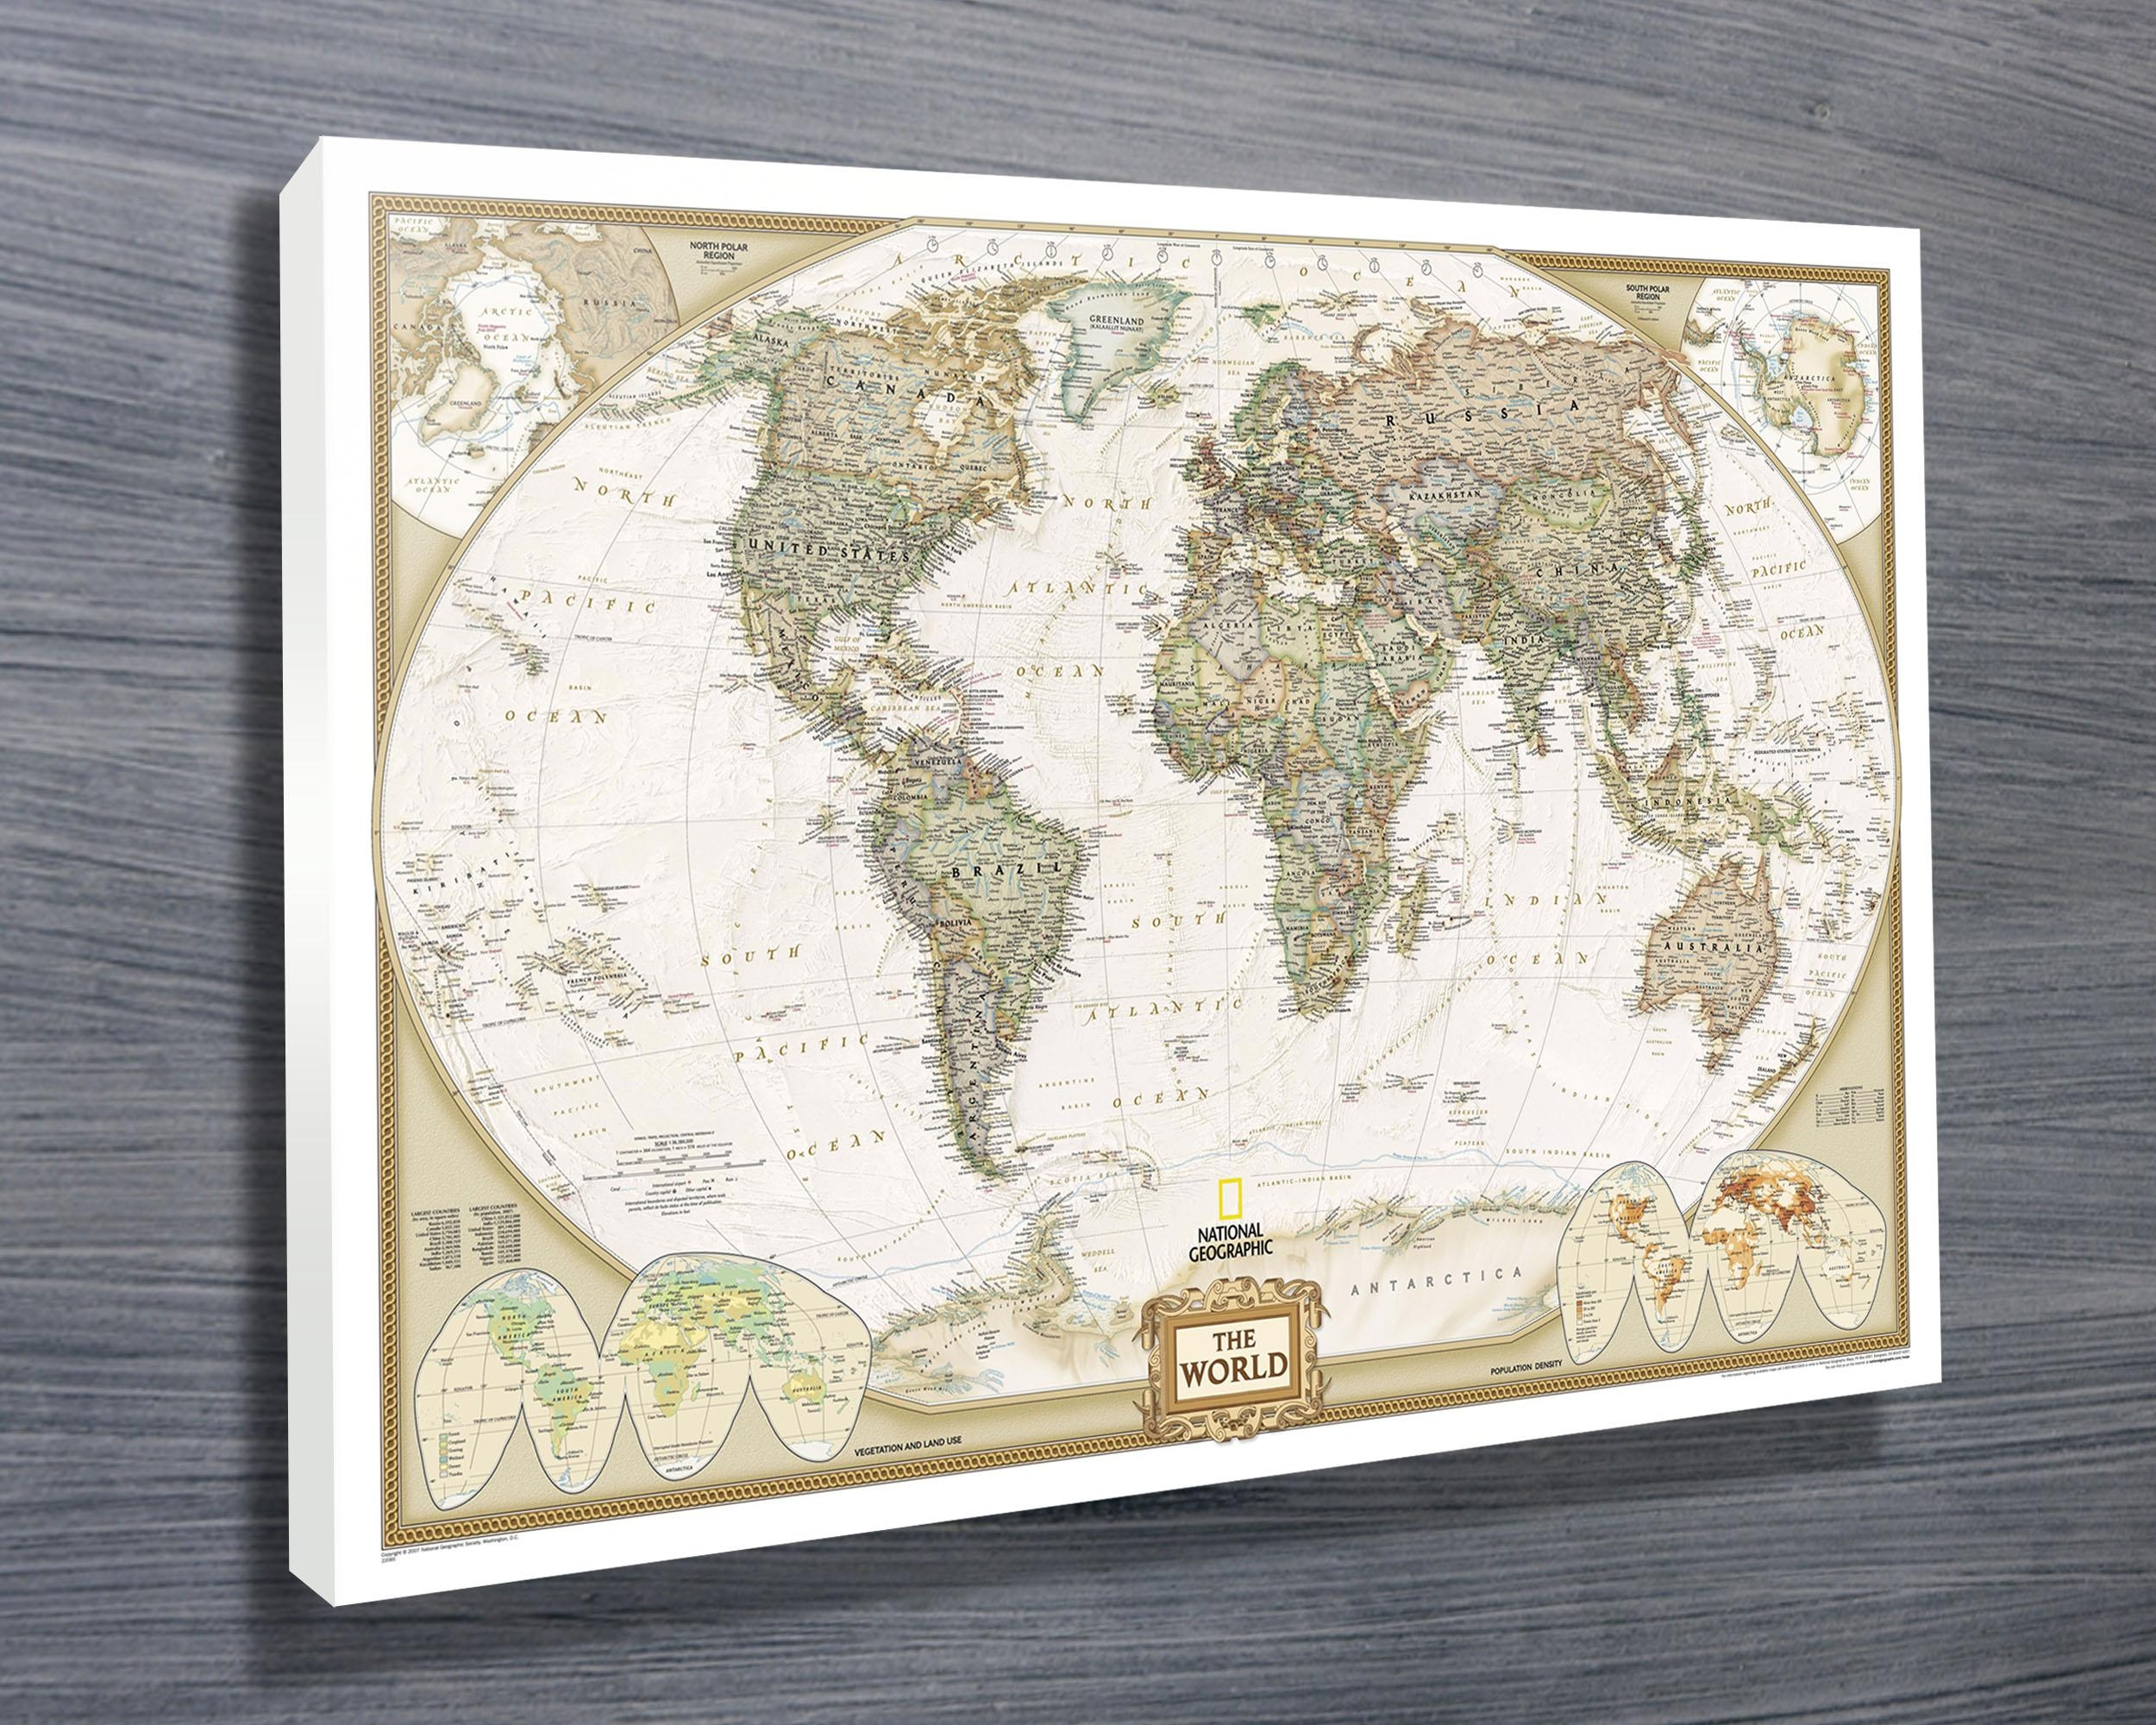 National Geographic Map – Canvas Prints Australia With Regard To Framed World Map Wall Art (Image 9 of 20)